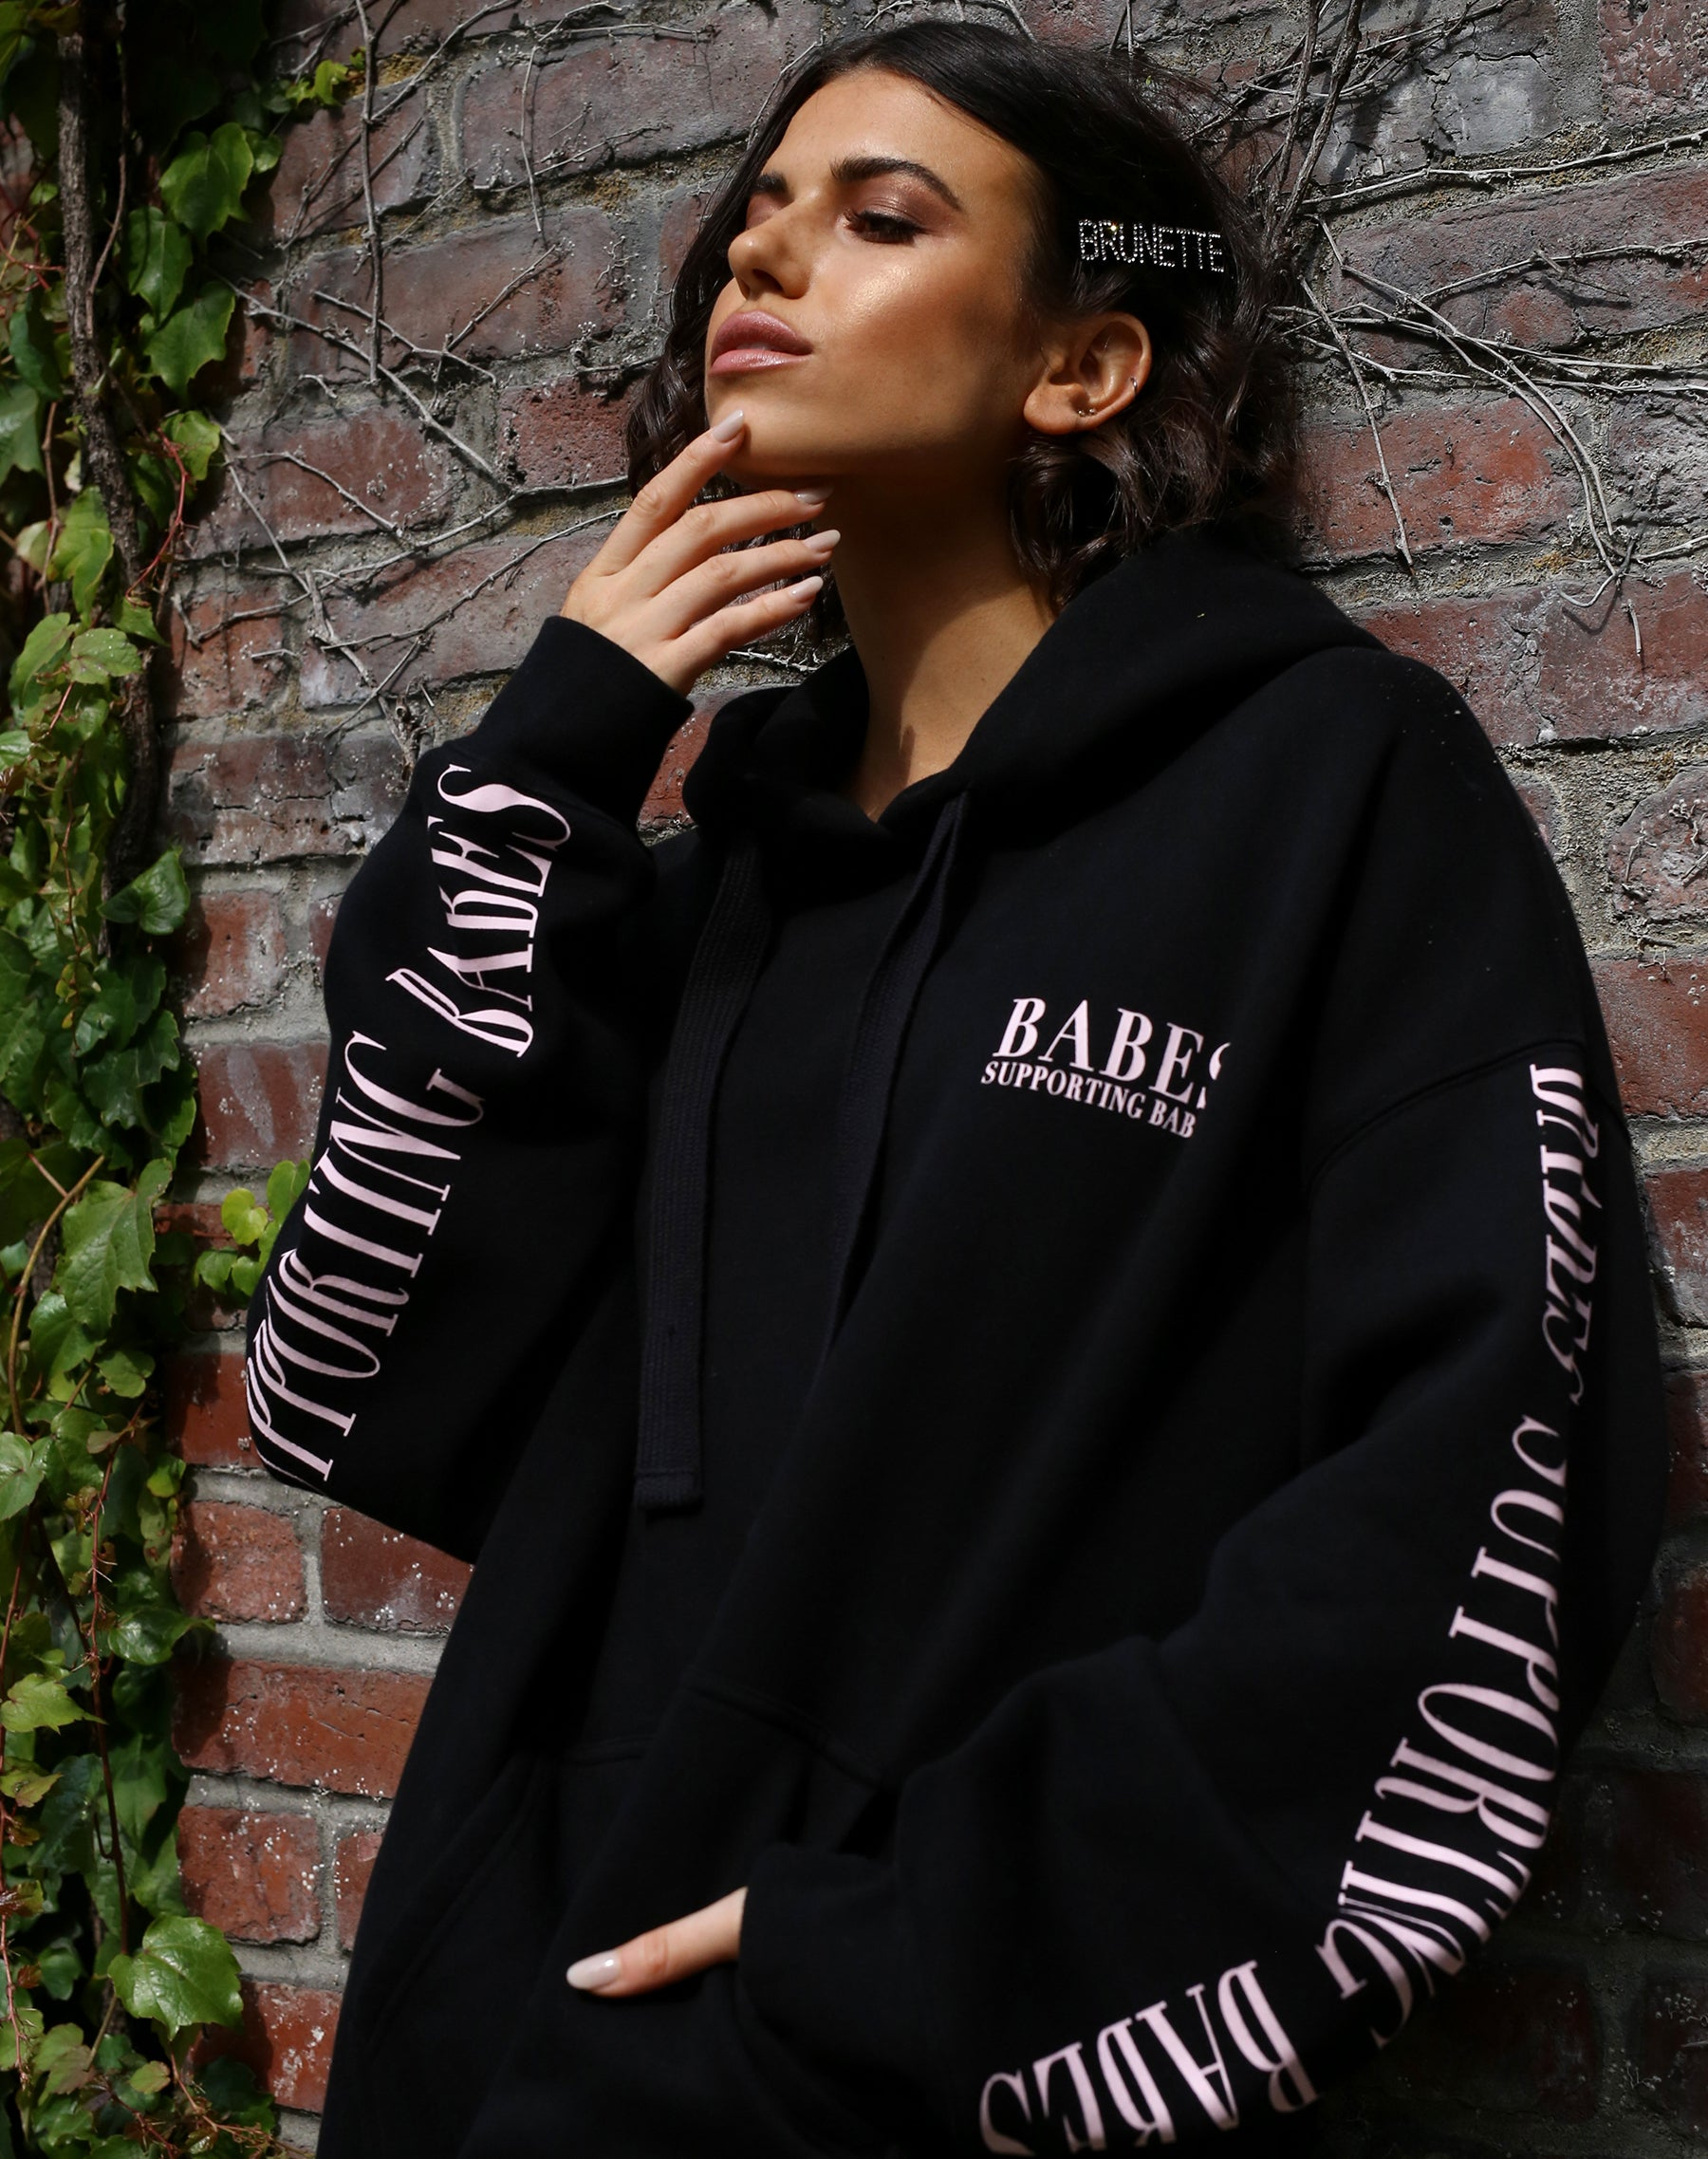 The Babes Supporting Babes big sister hoodie in pink and black by Brunette the Label.